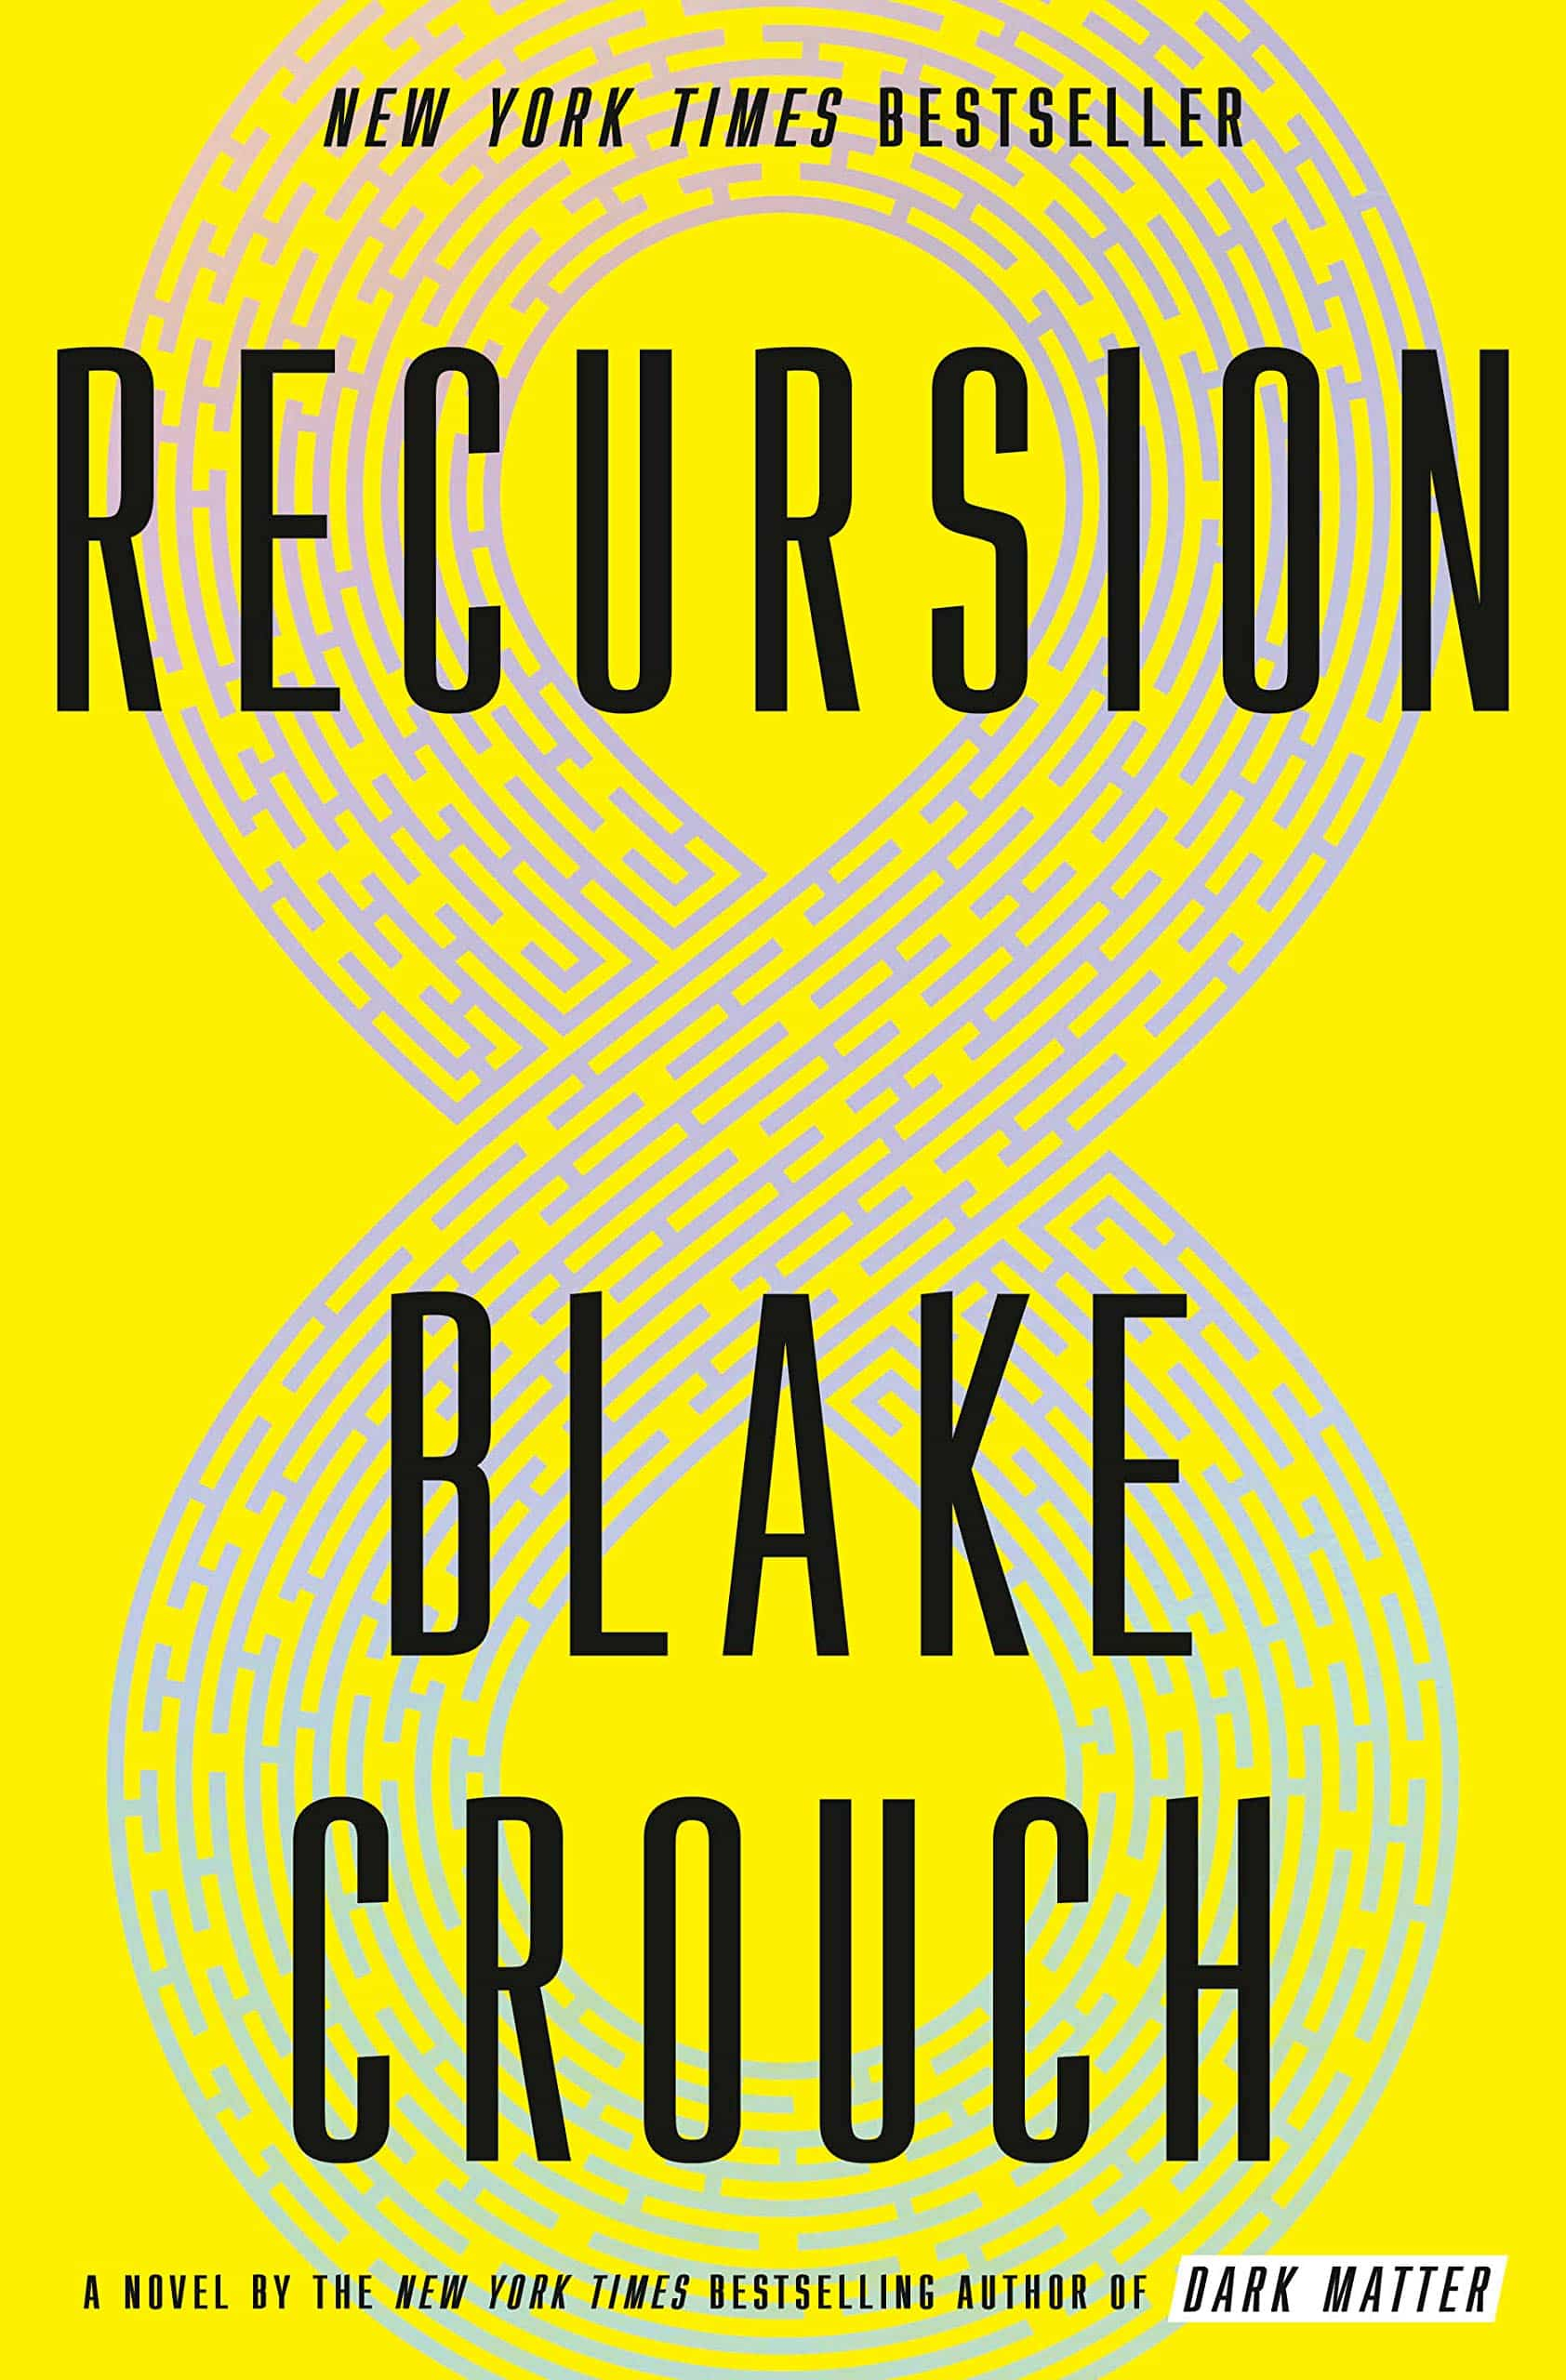 The cover of Recursion